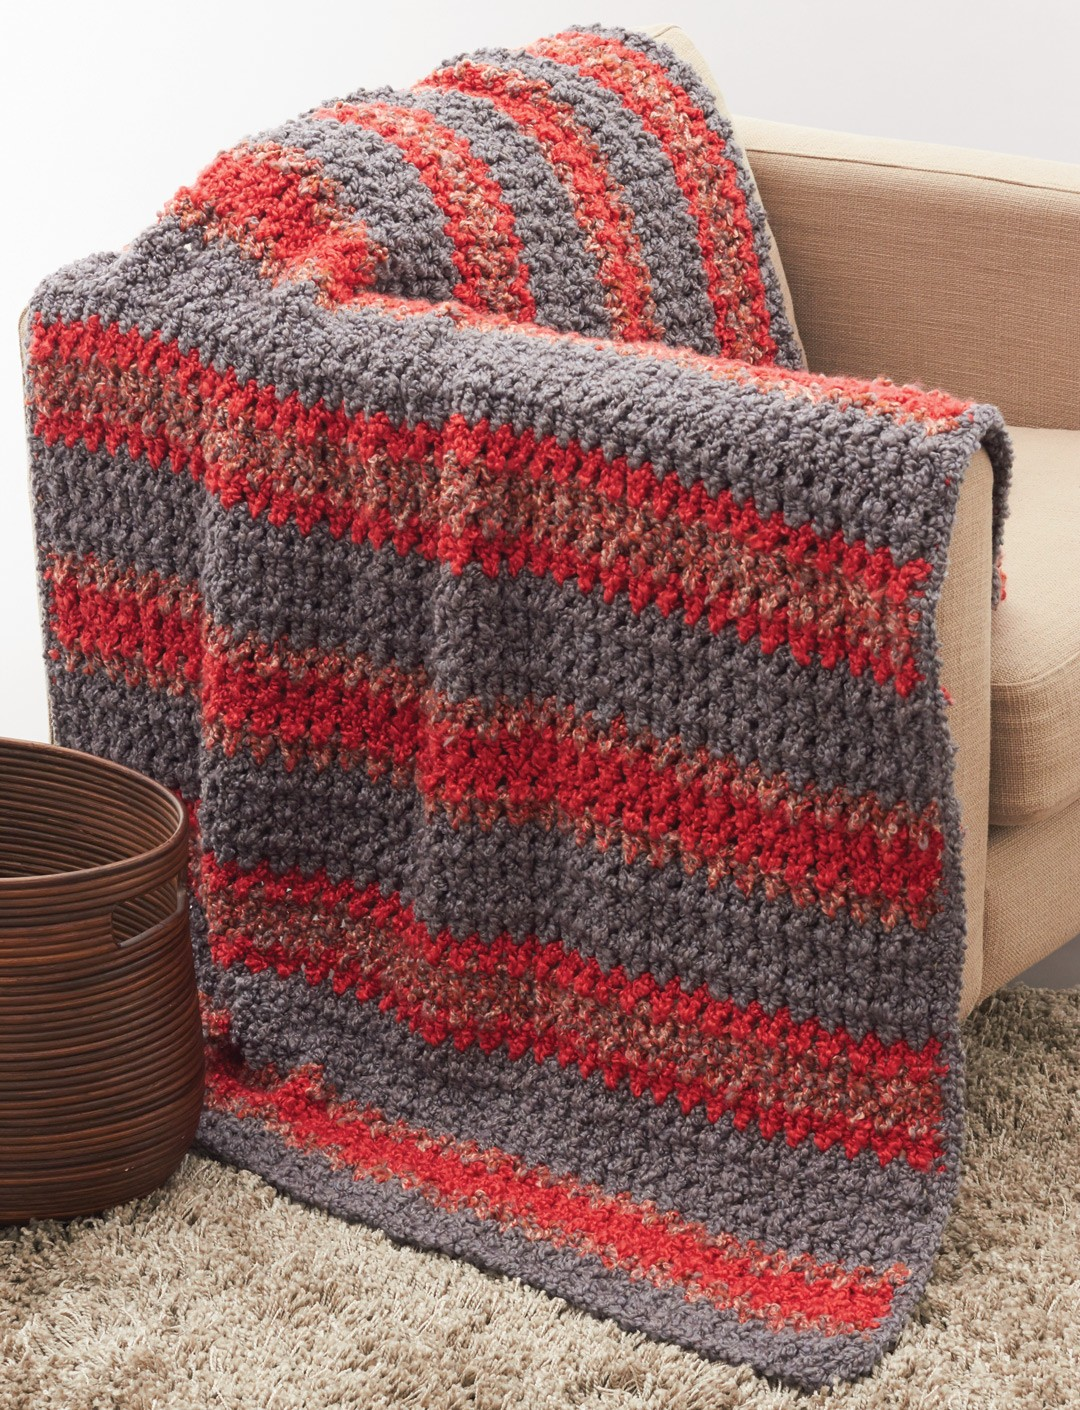 Bernat Striped Crochet Afghan, Crochet Pattern ...